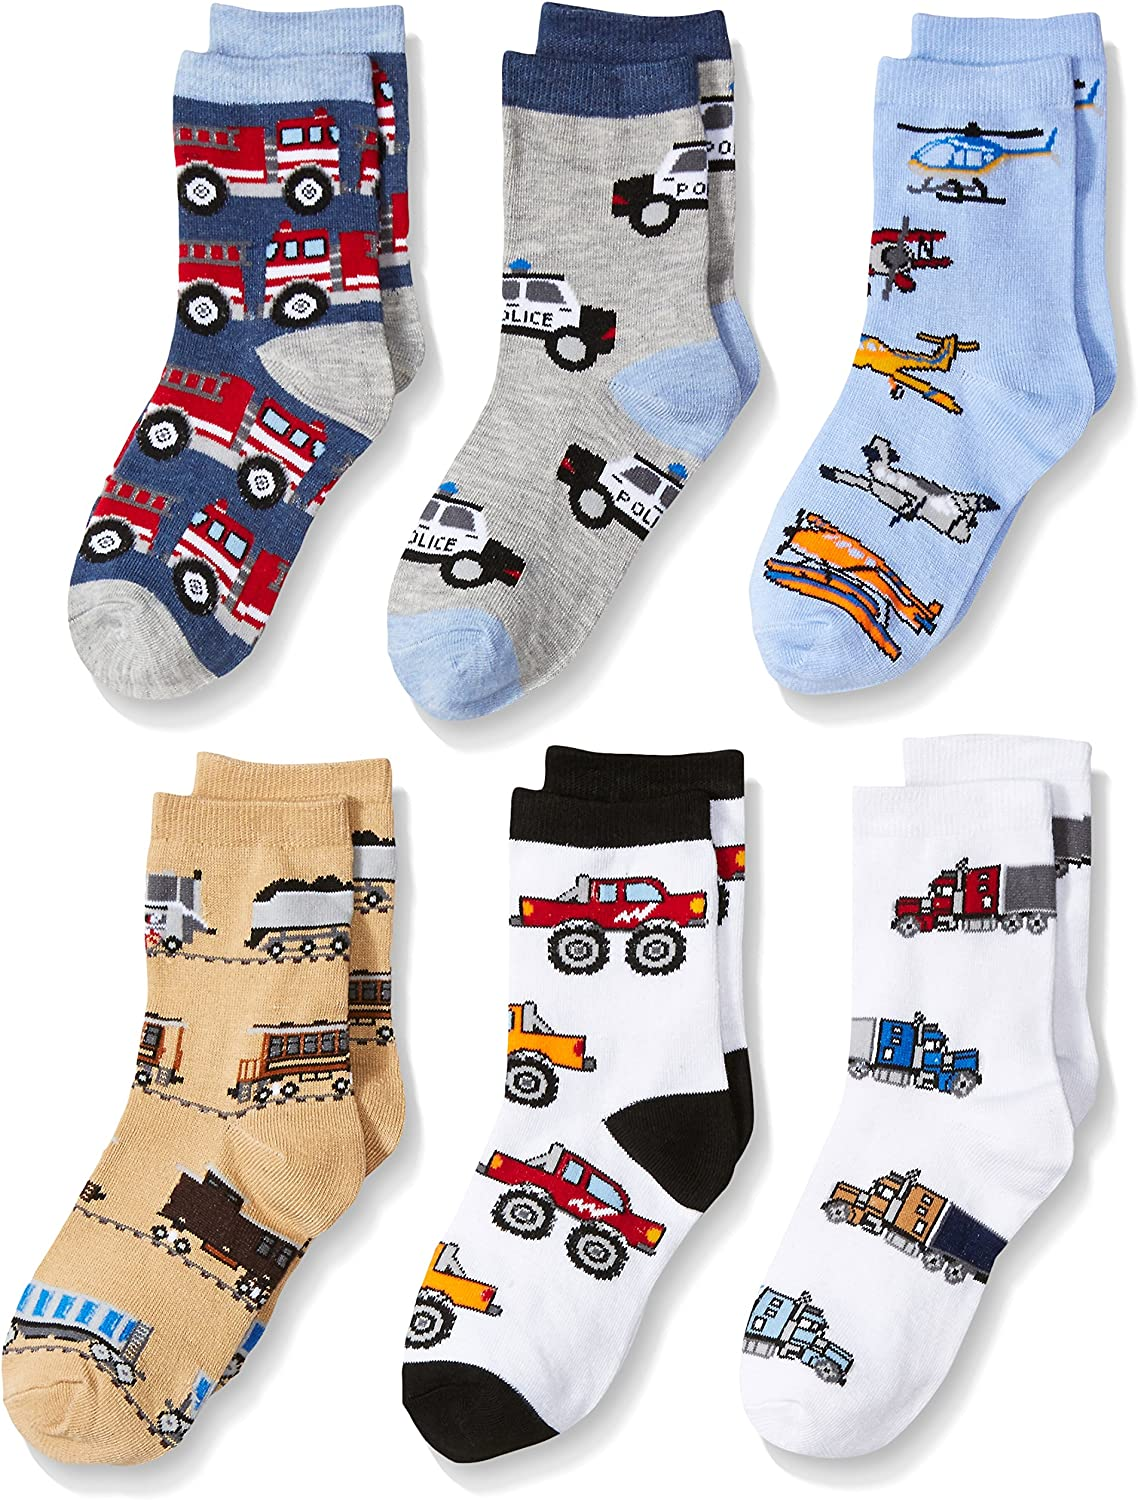 Jefferies Socks Little Boys Trains Trucks Cars Pattern Crew Socks 6 Pack, Multi: Clothing